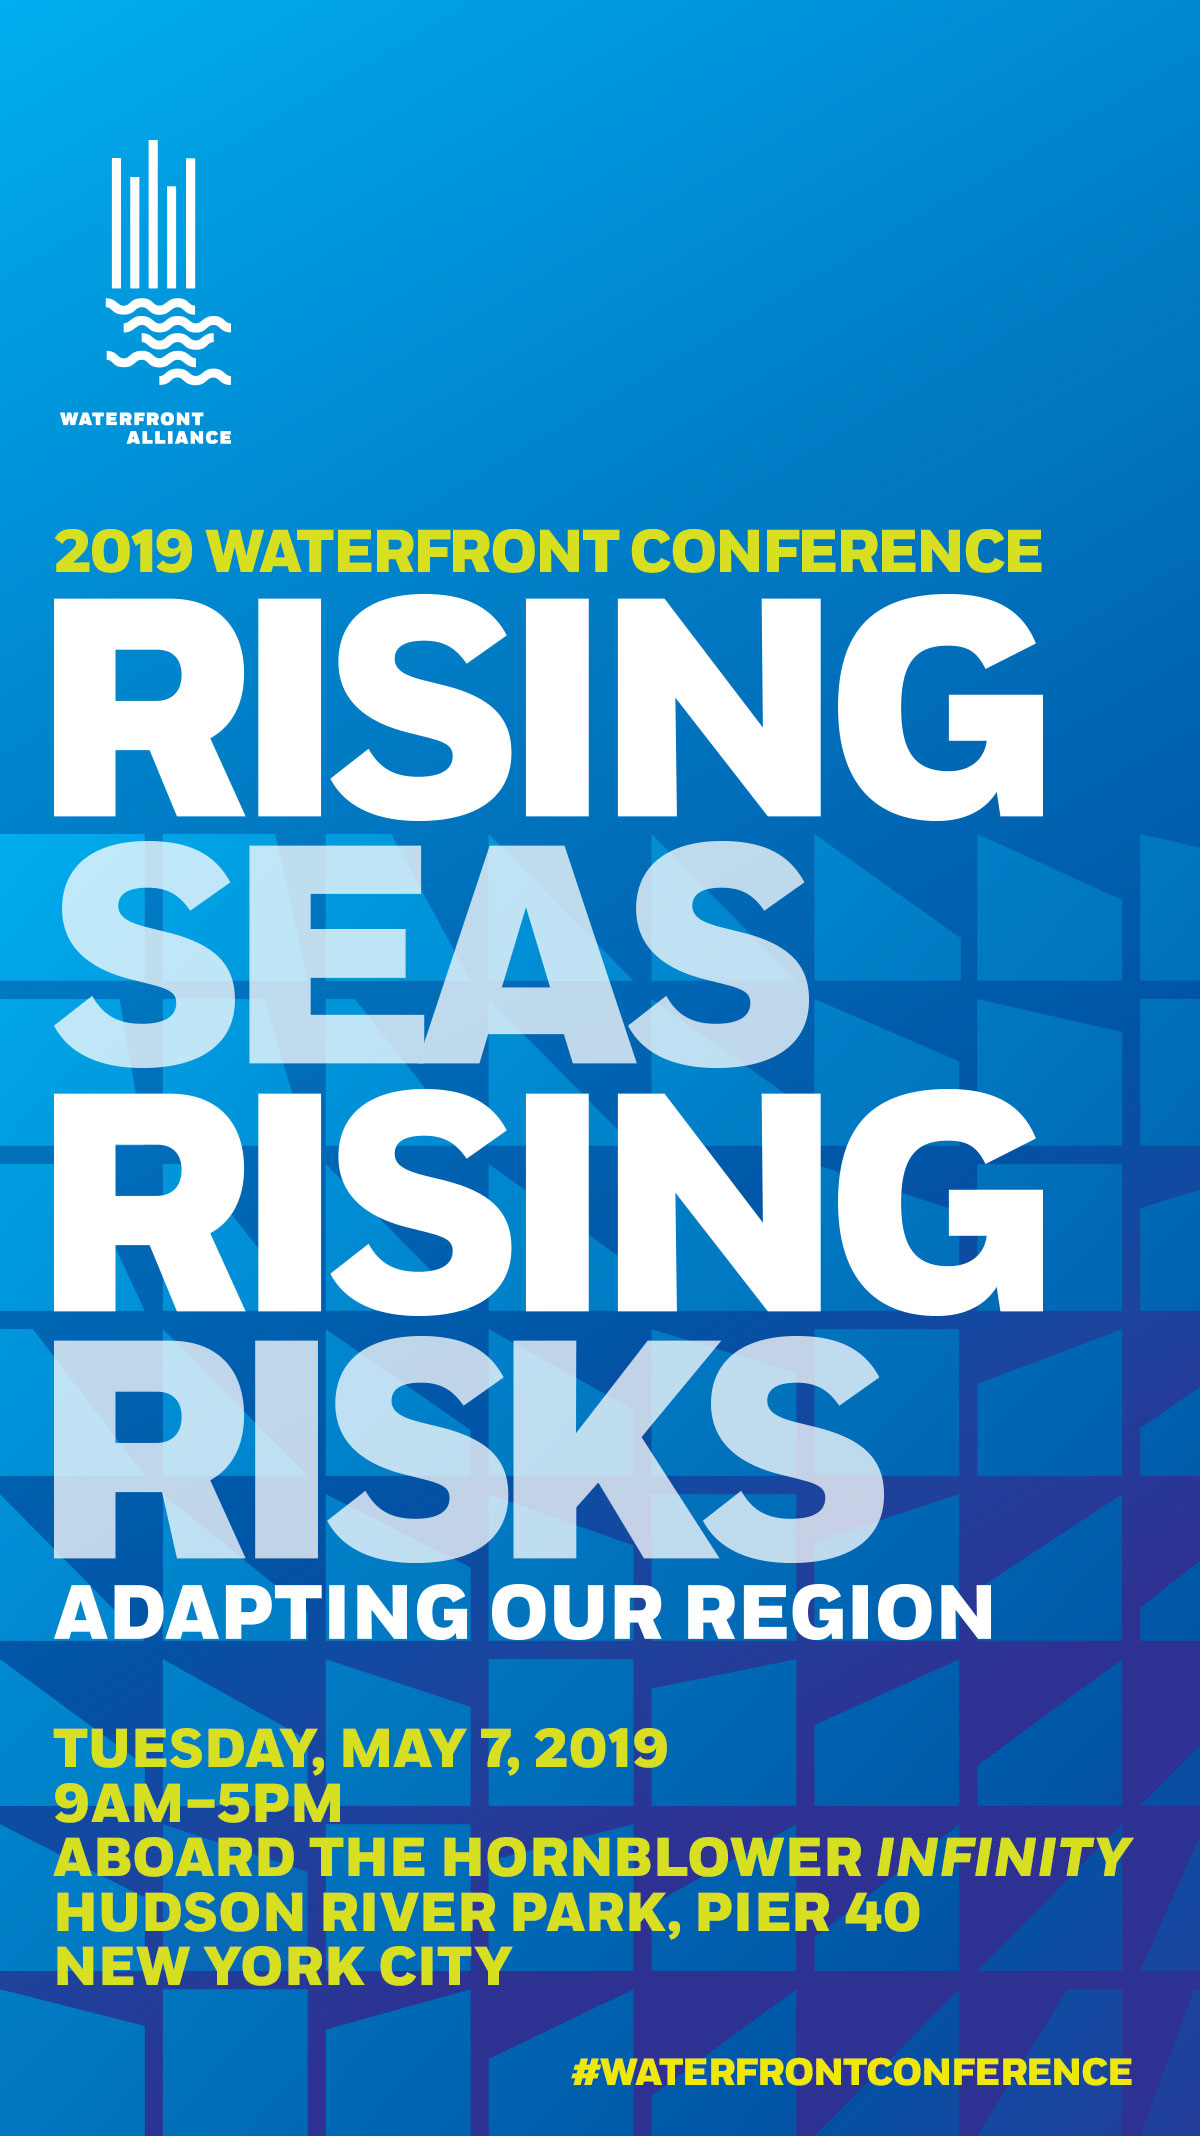 2019 Waterfront Conference